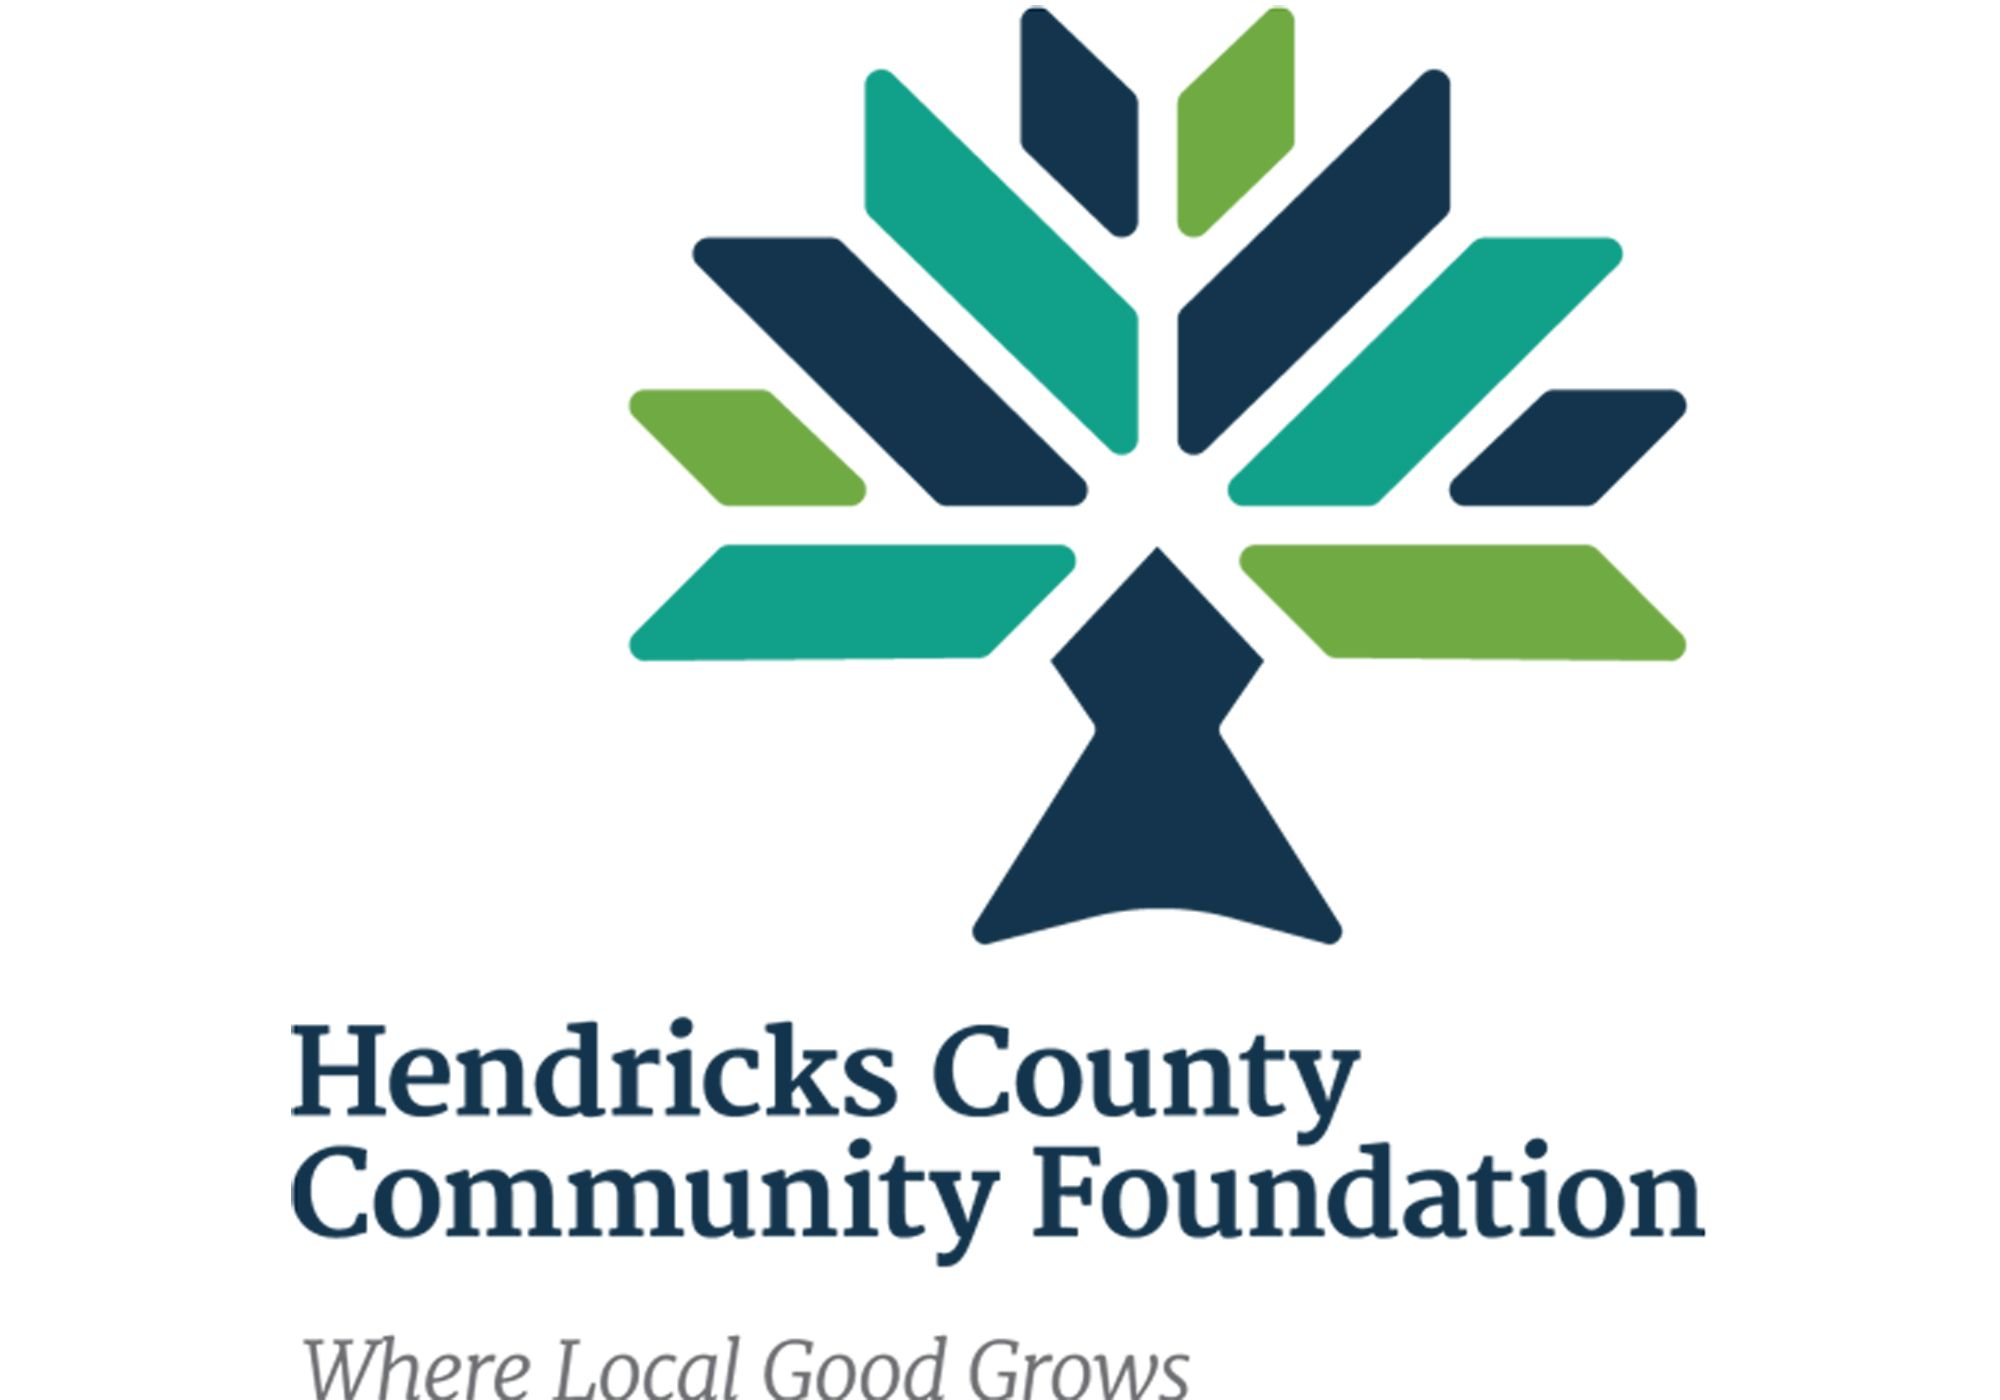 Community Foundation Awards over $64,000 in Grants